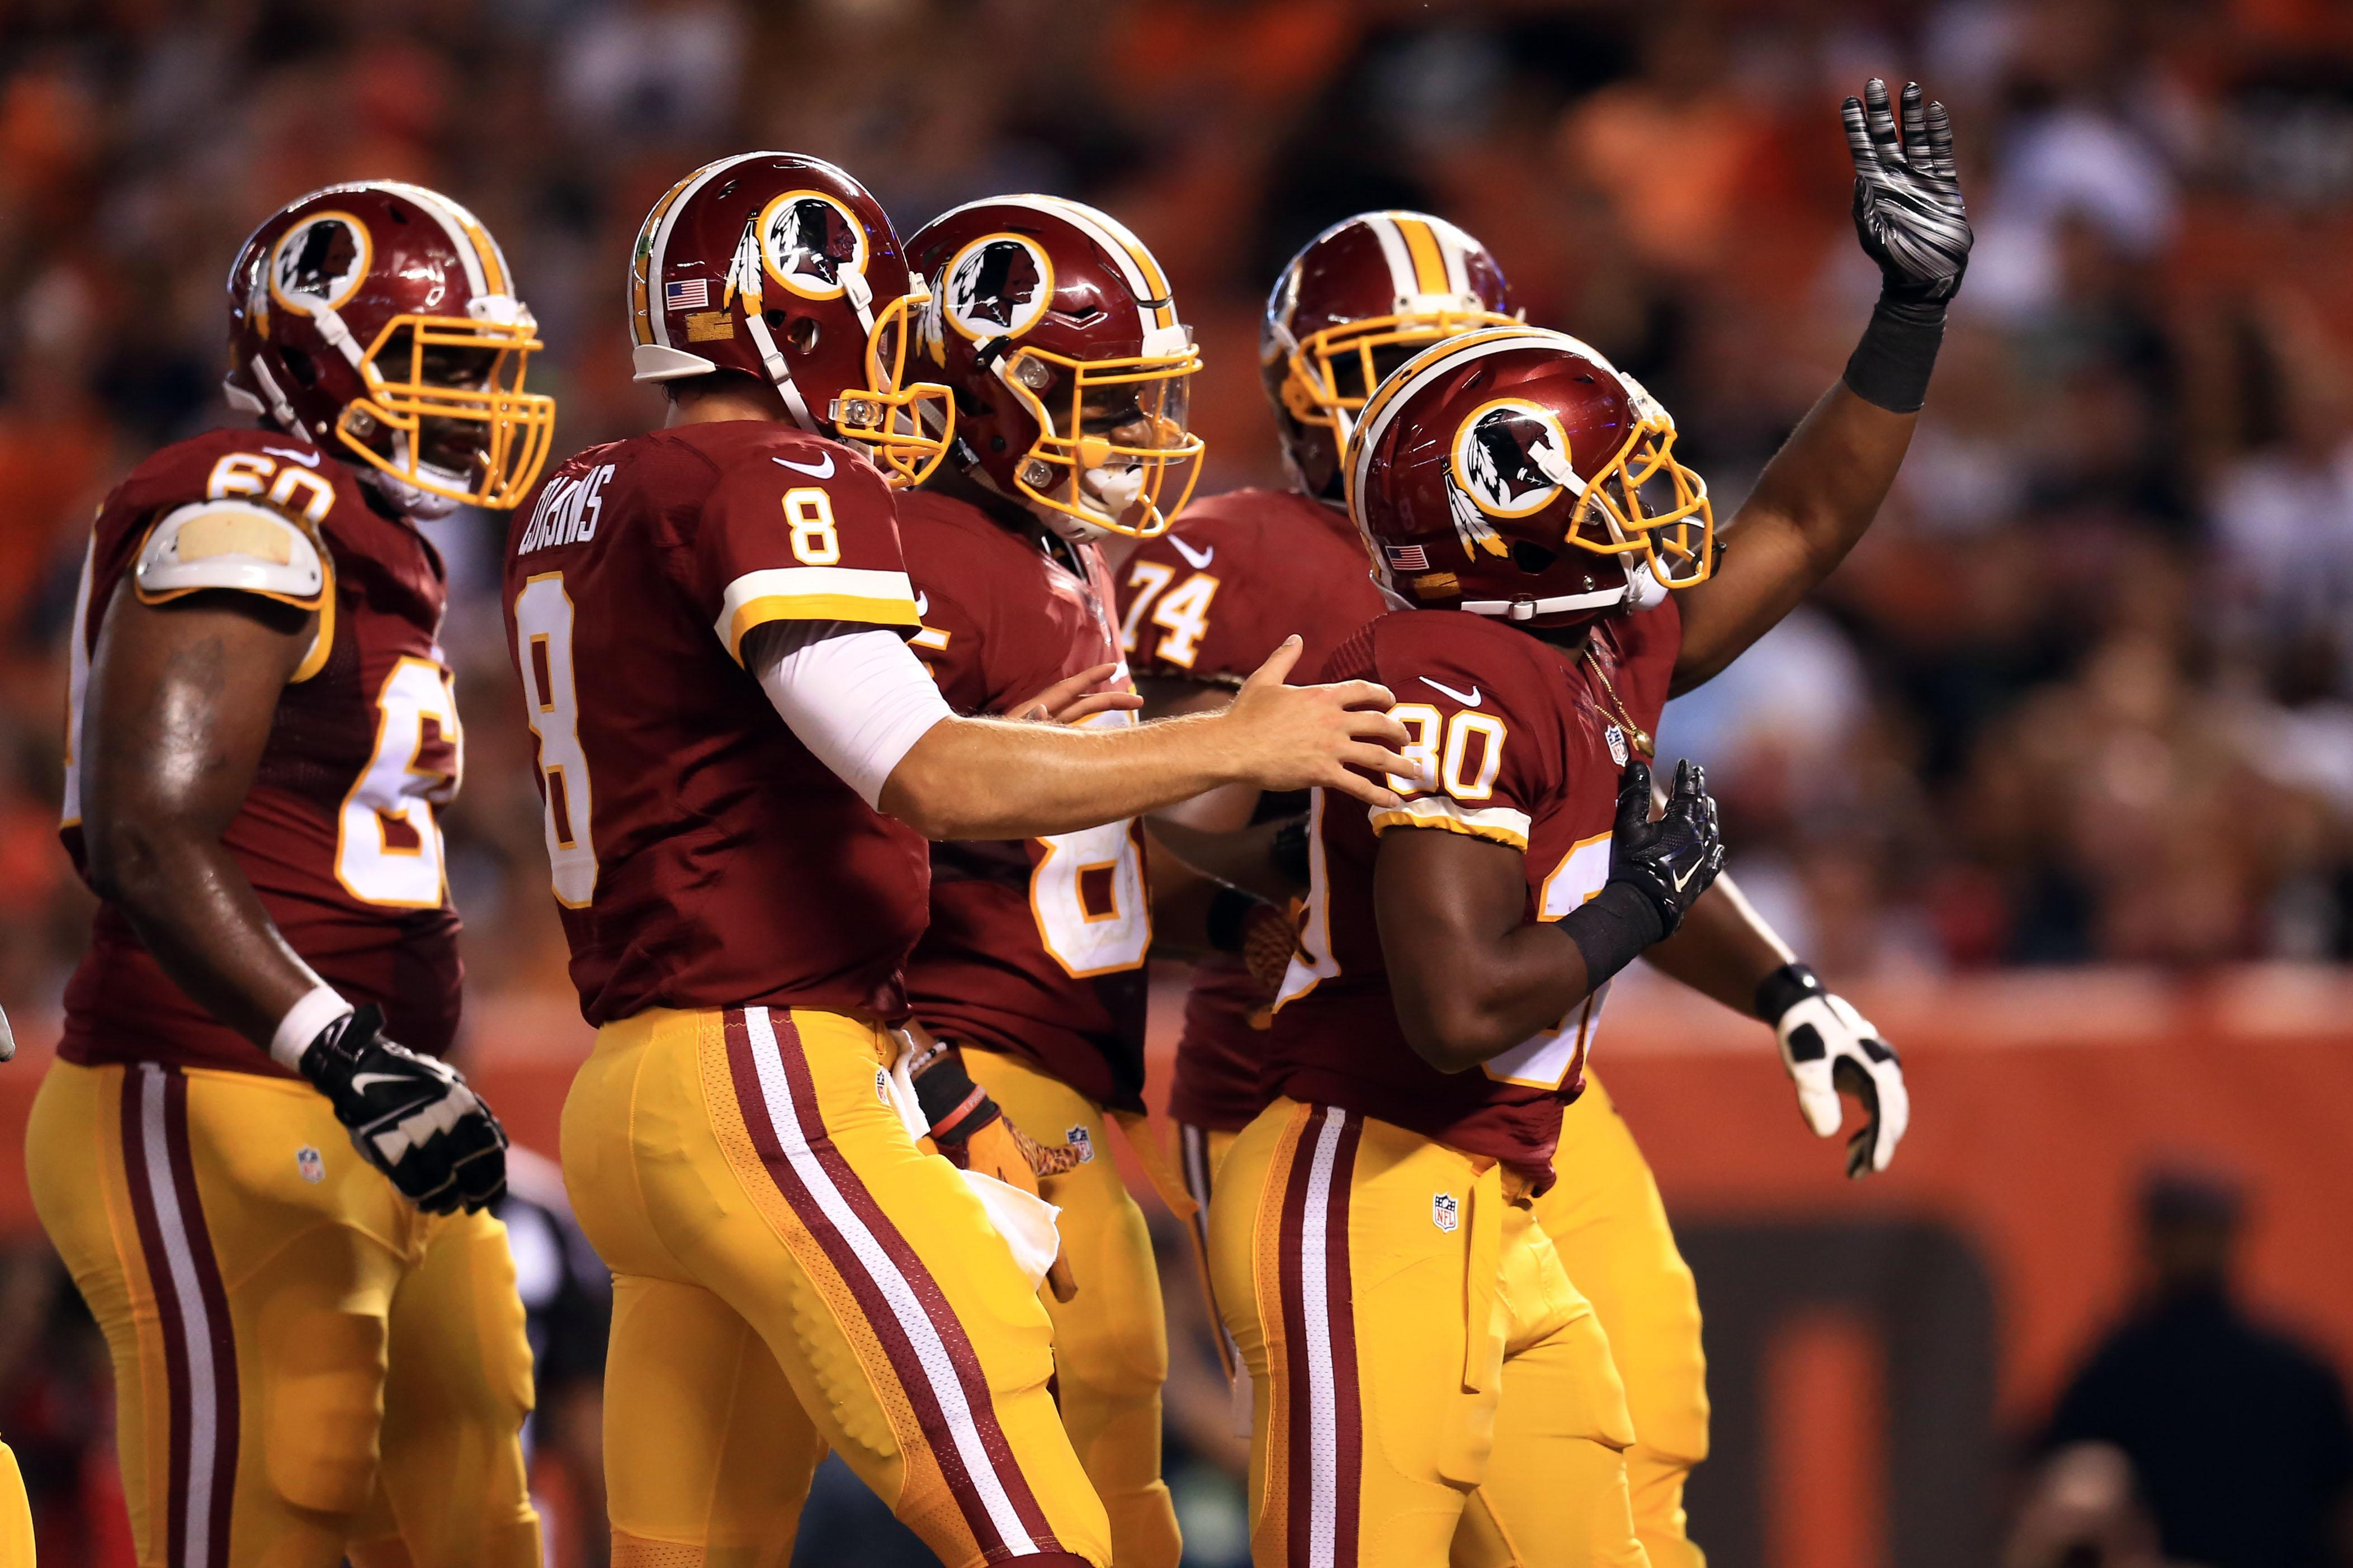 Redskins locker room goes nuts after Popeyes delivery